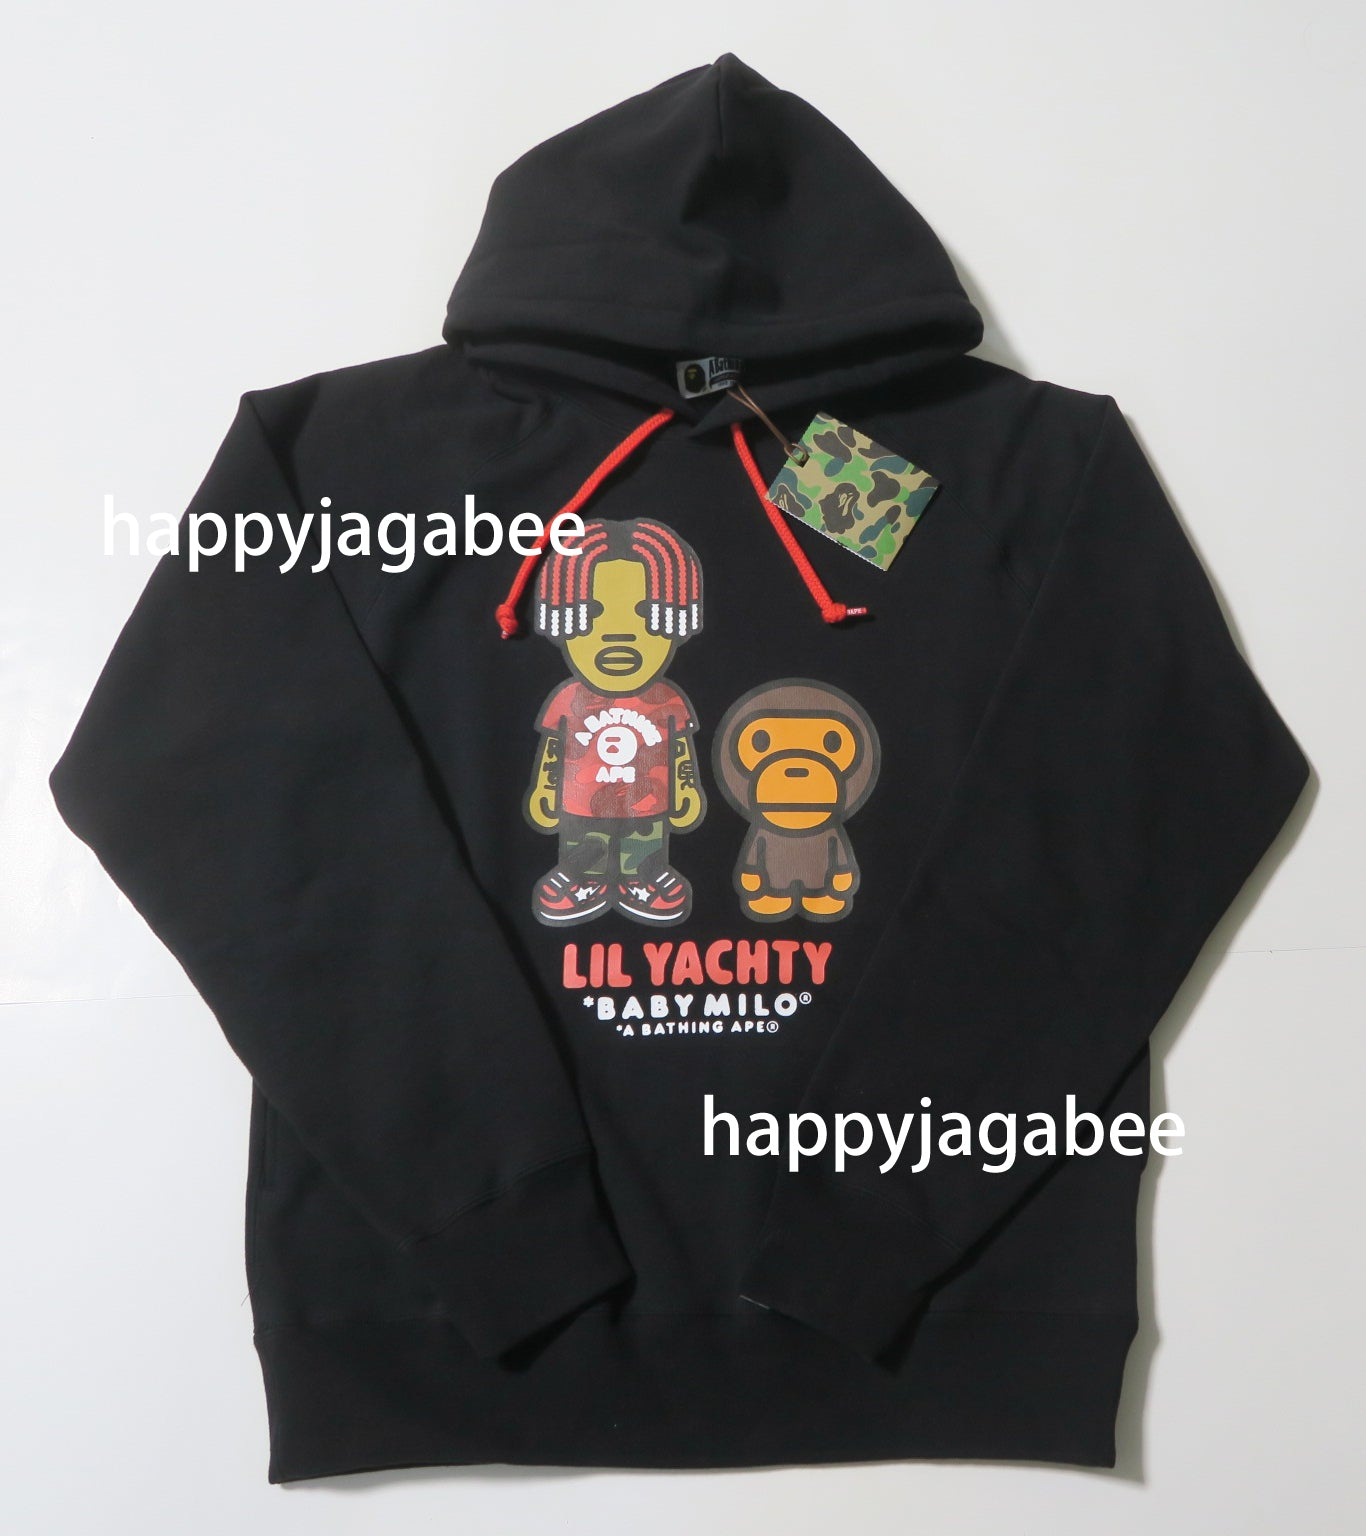 0e83a3d0 ... A BATHING APE BABY MILO x LIL YACHTY PULLOVER HOODIE - happyjagabee  store ...